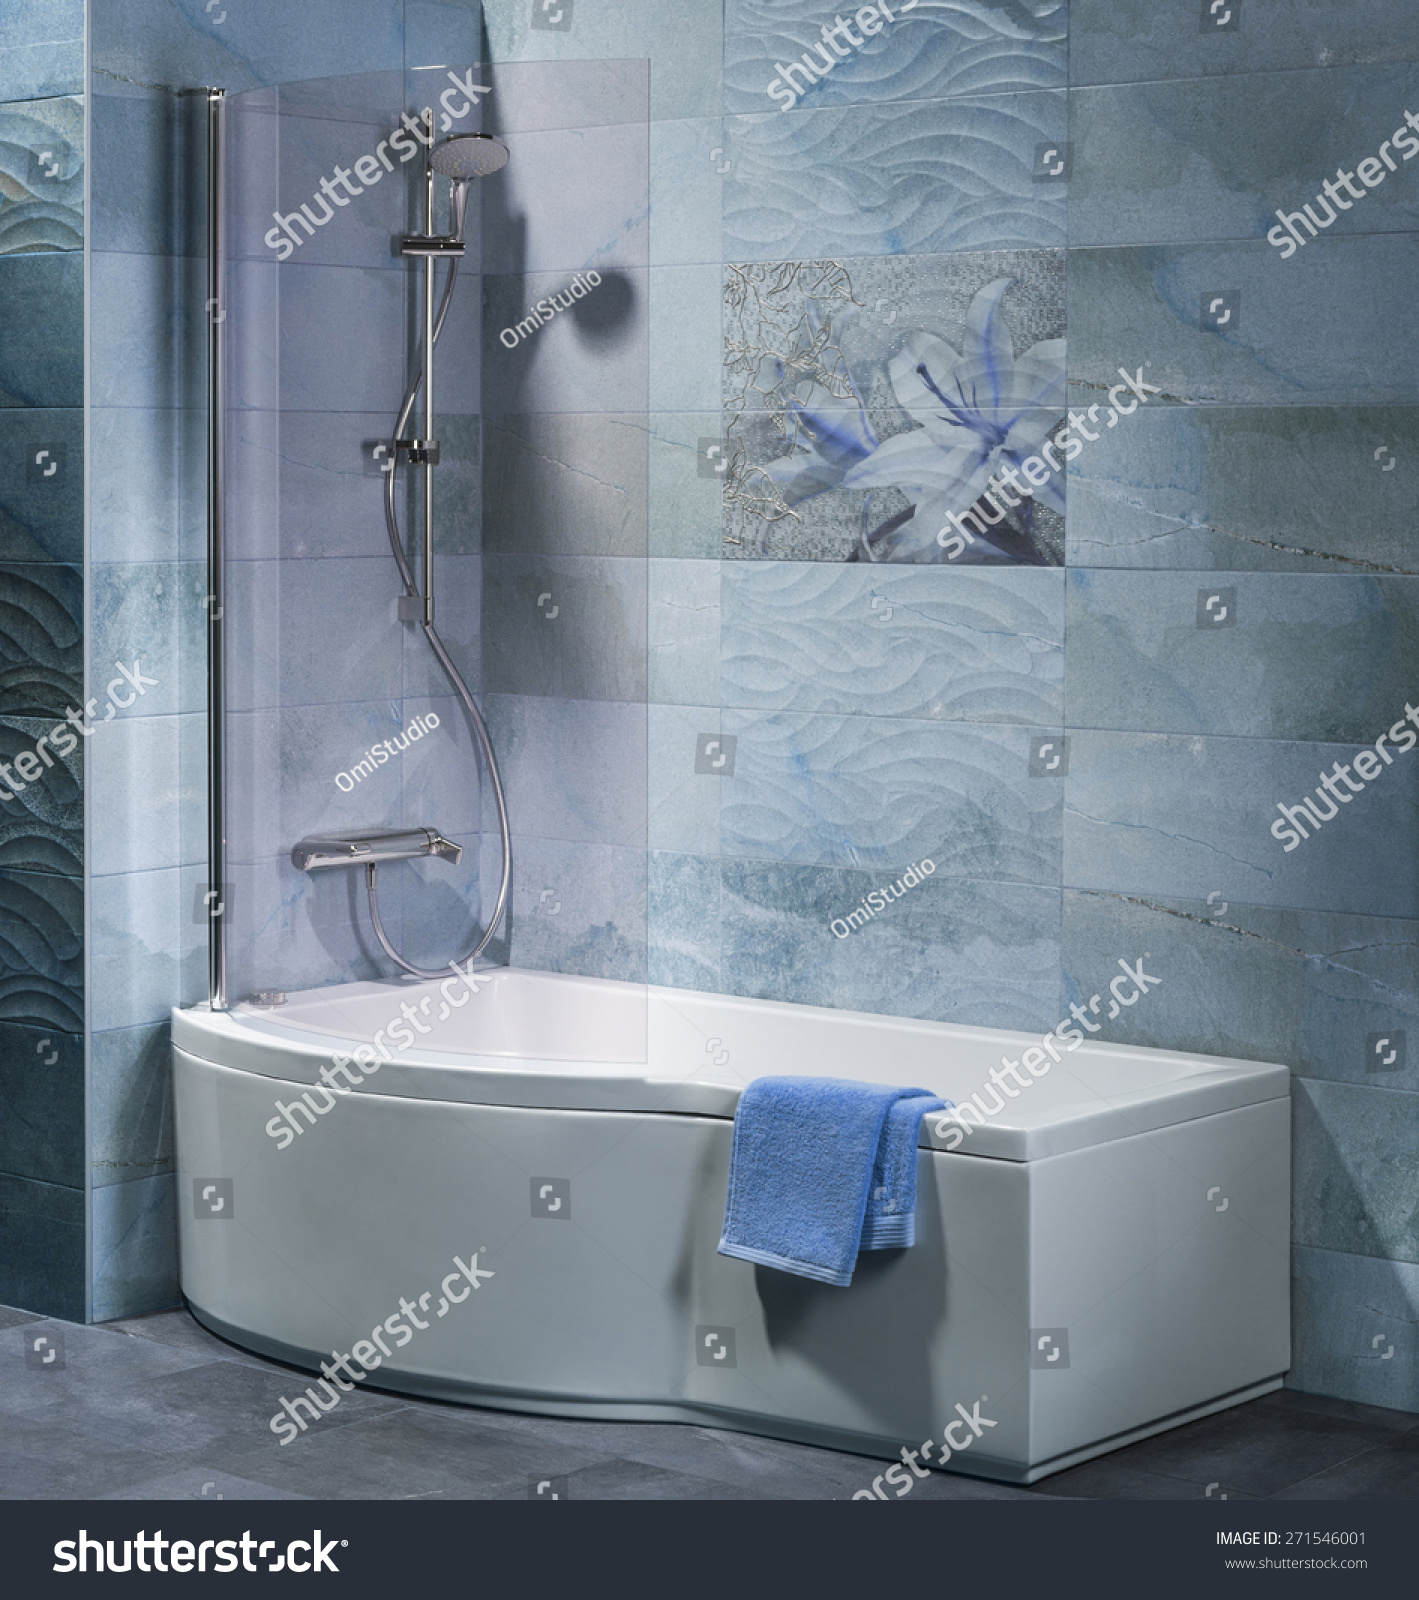 Interior Bathroom Tub Shower Accessories Stock Photo (Royalty Free ...